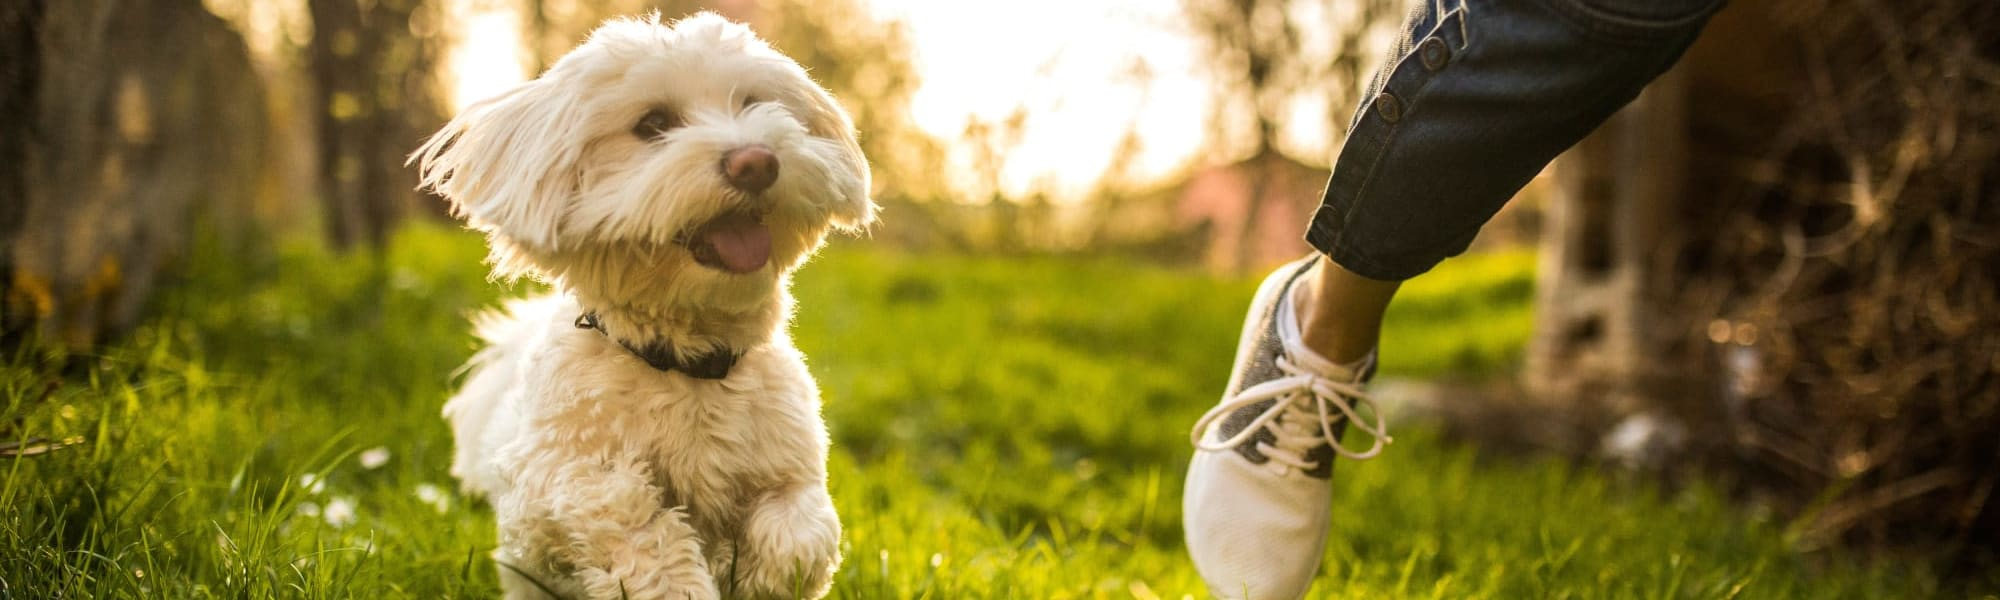 The Mark Parsippany's pet policy in Parsippany, New Jersey